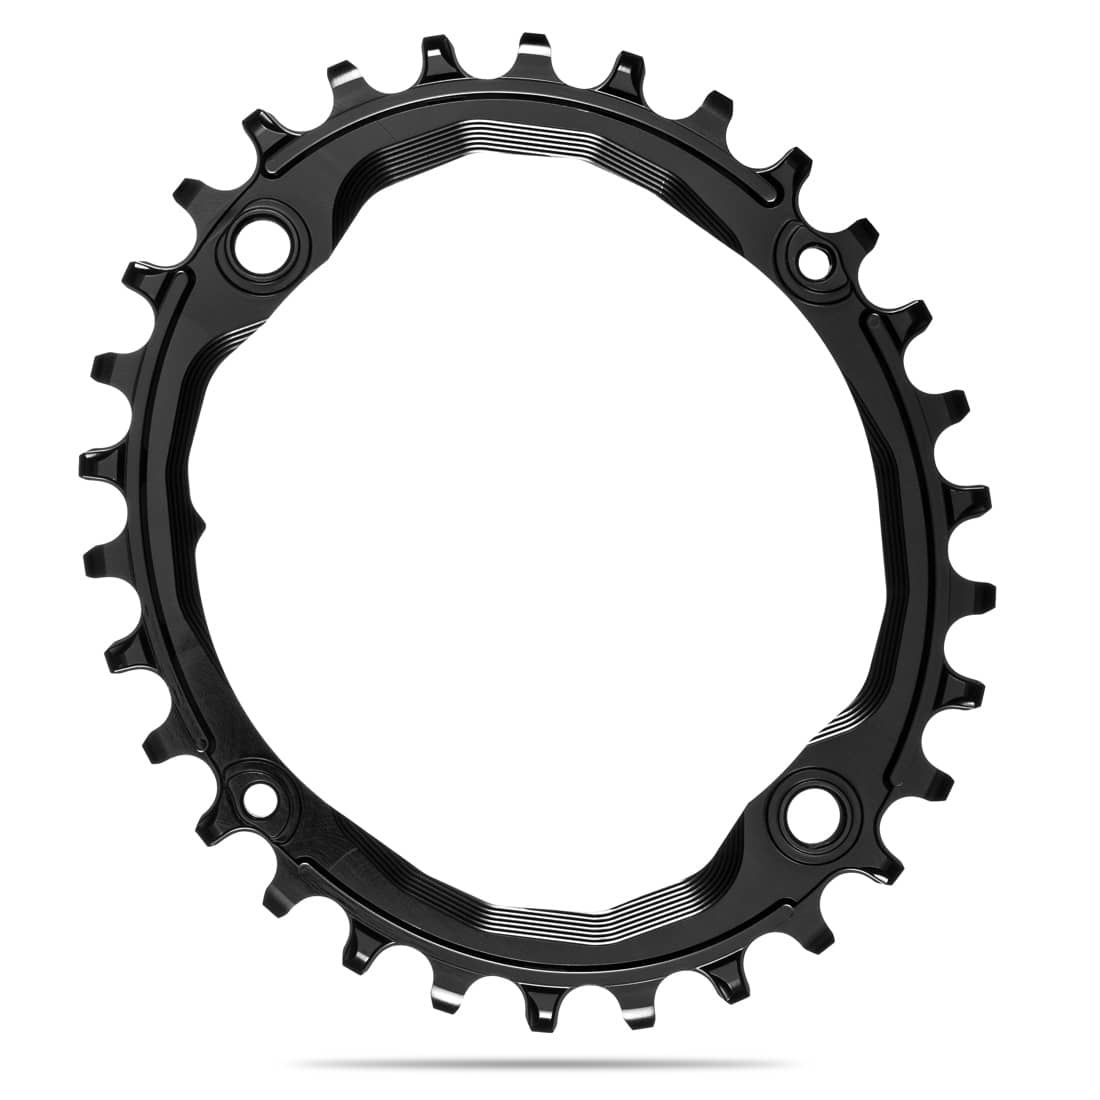 absoluteBLACK Oval 104 BCD Chainring - 32t, 104 BCD, 4-Bolt, Narrow-Wide, Black-1